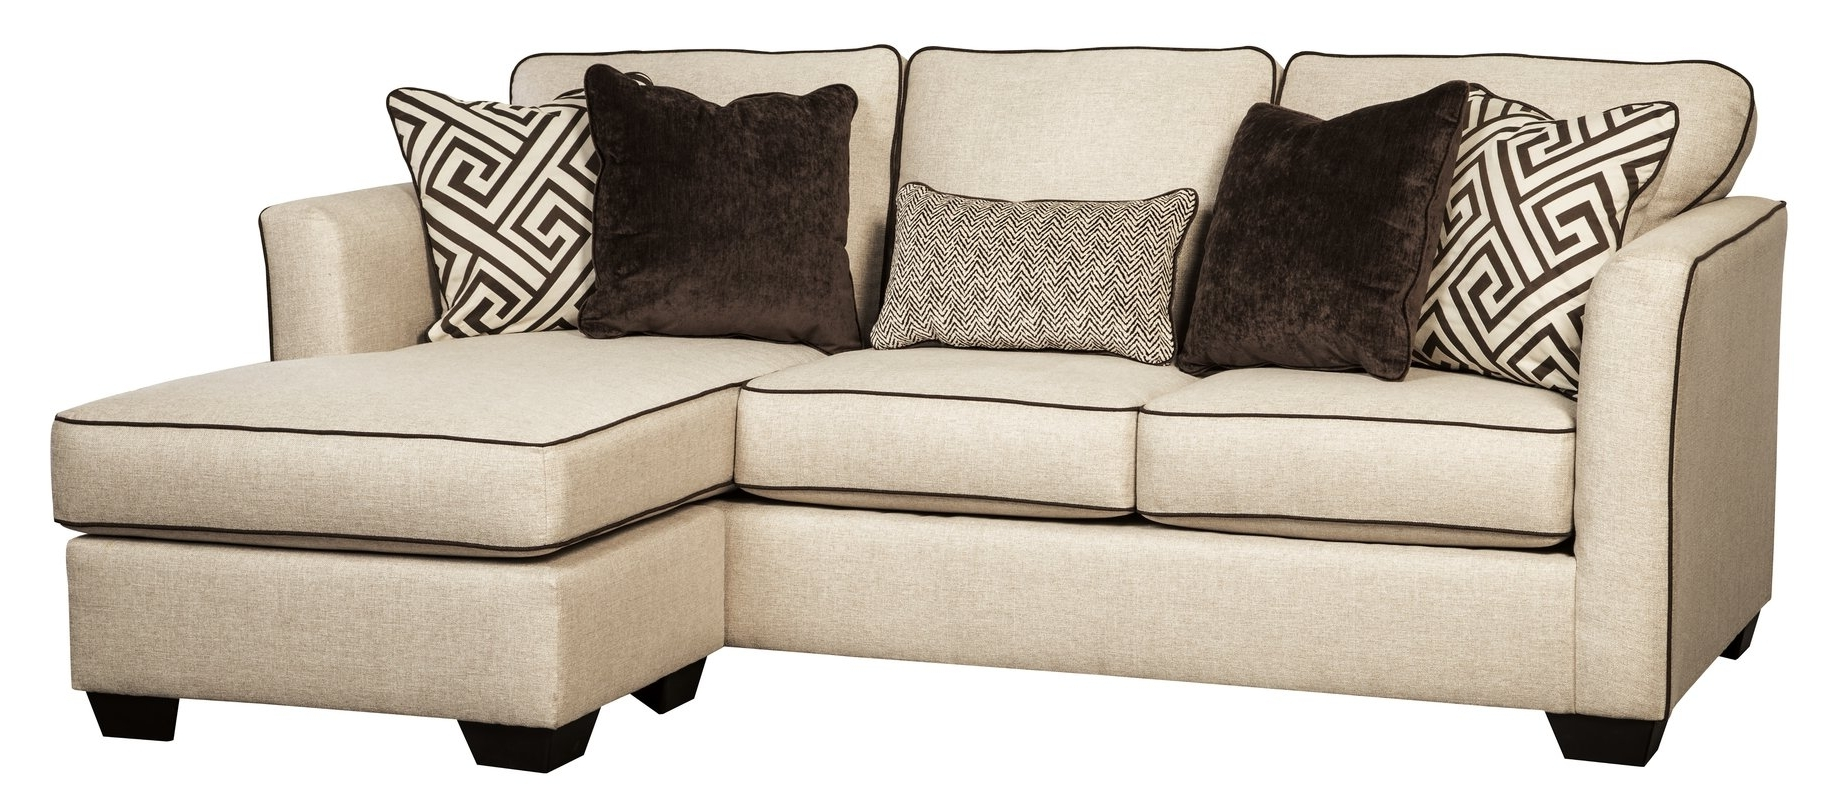 Benchcraft Carlinworth Sofa Chaise Sleeper & Reviews (View 8 of 15)